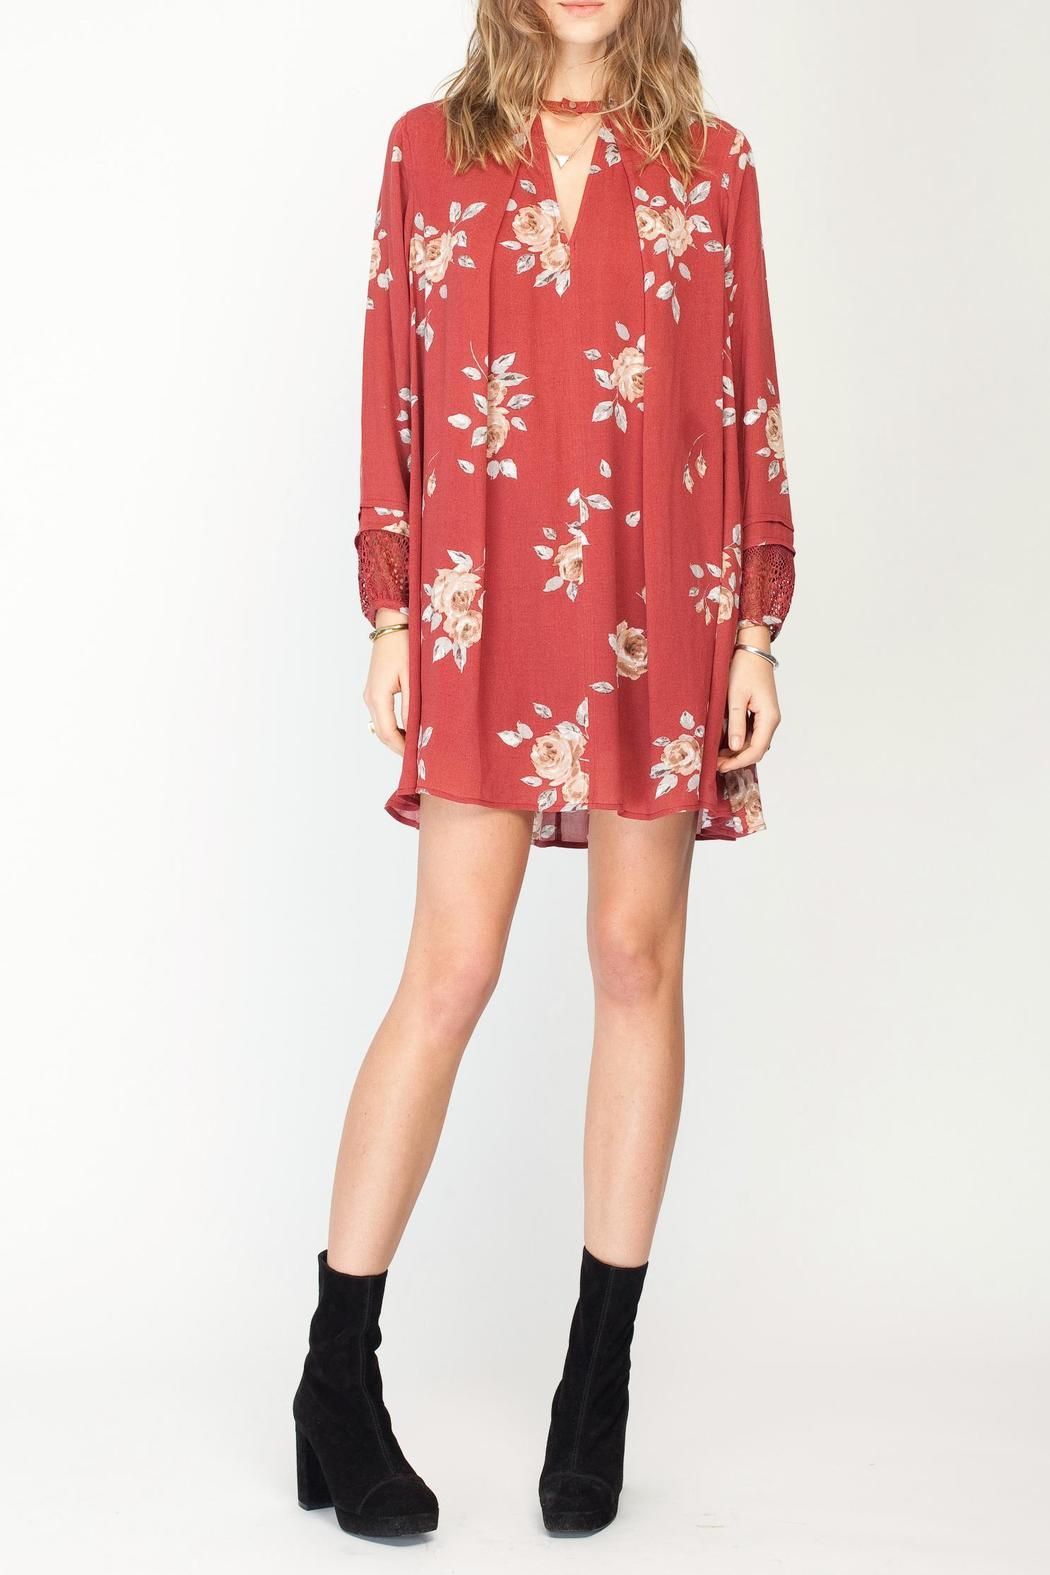 Gentle fawn floral utopia dress choker neckline and floral